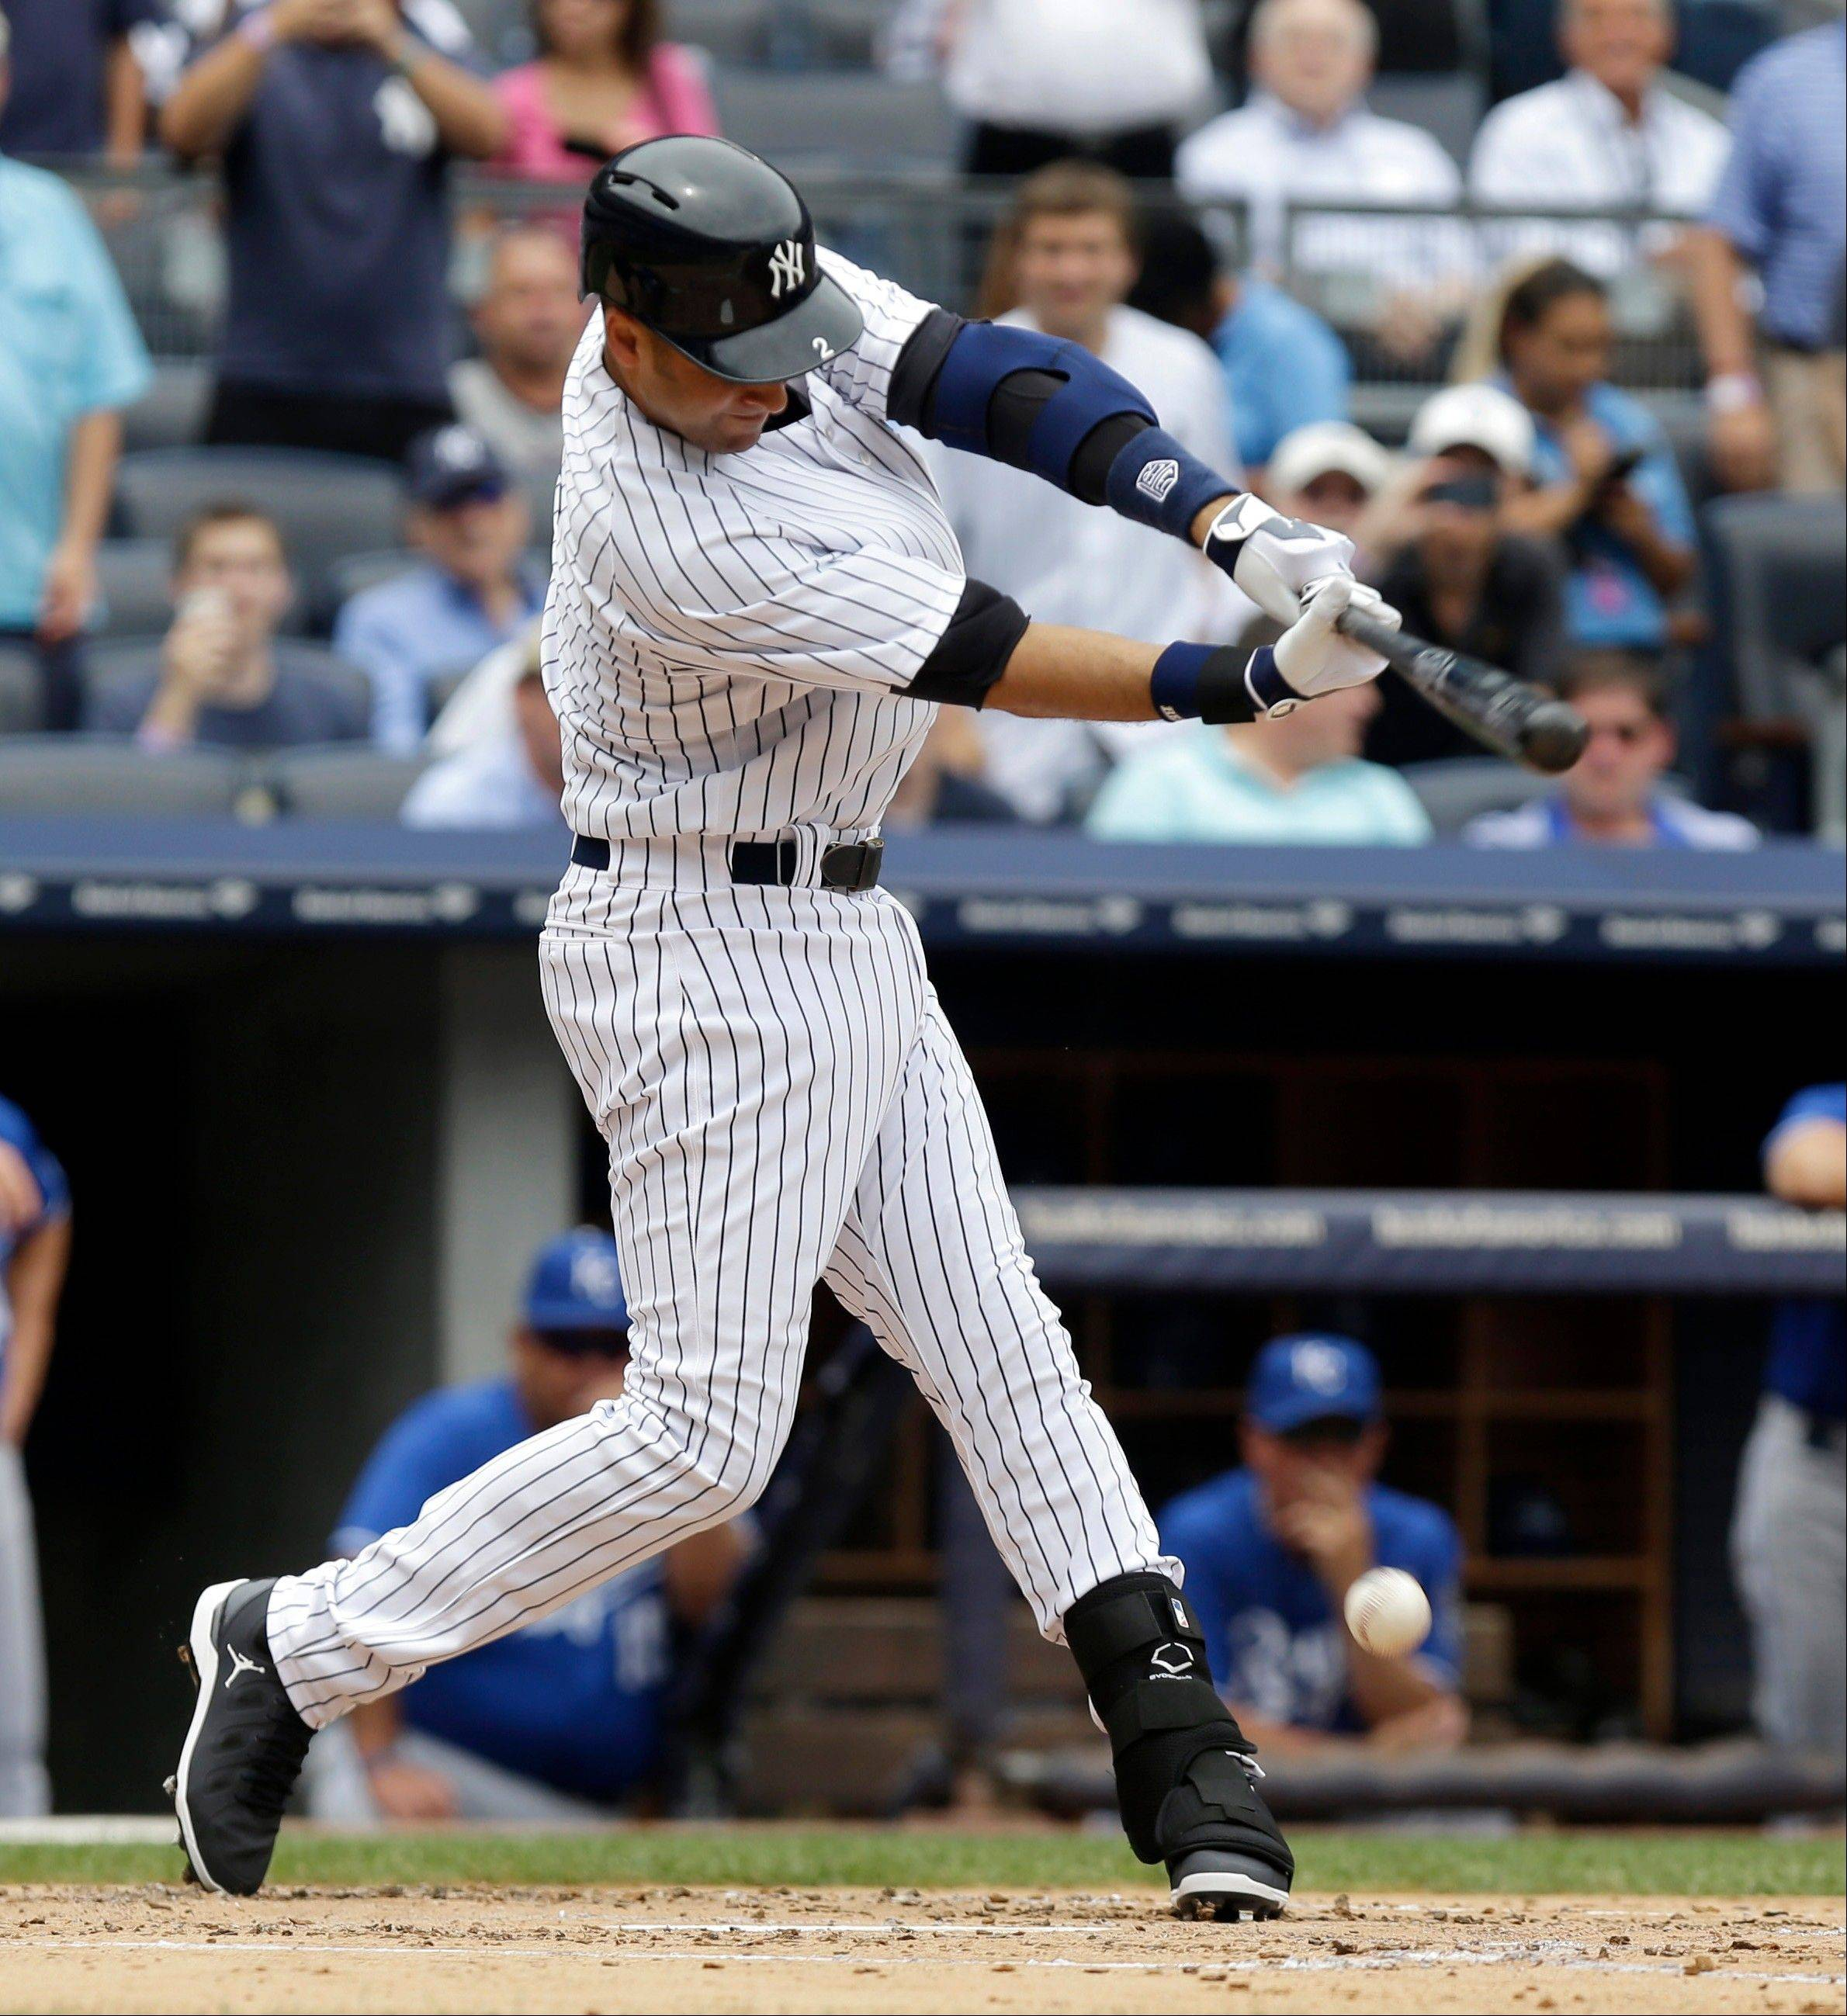 New York Yankees' Derek Jeter singles during the first inning of the baseball game against the Kansas City Royals at Yankee Stadium on Thursday, July 11, 2013, in New York. (AP Photo/Seth Wenig)